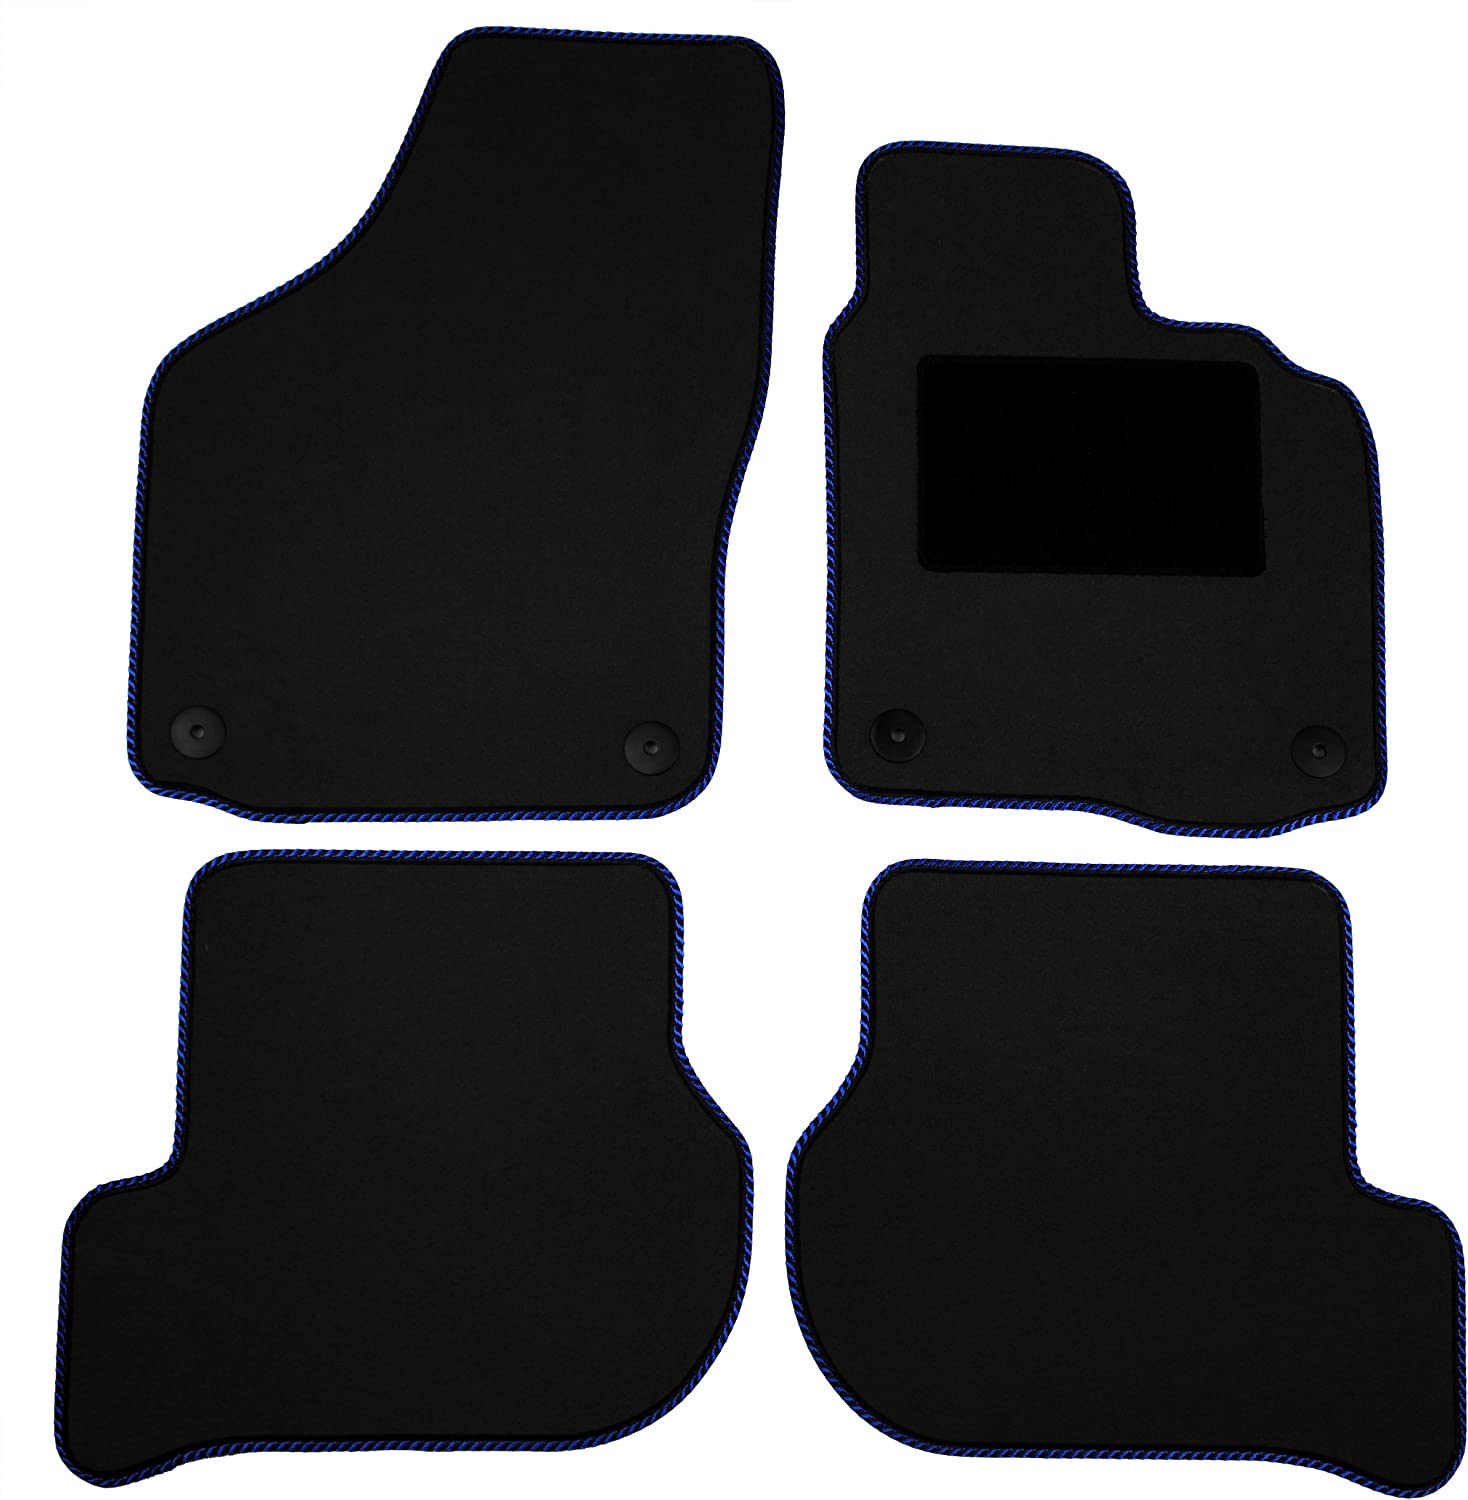 Cosmos V3561LUBL10HP Luxury Carpet Black Tailored Floor Mats with Black Binding with Heelpad